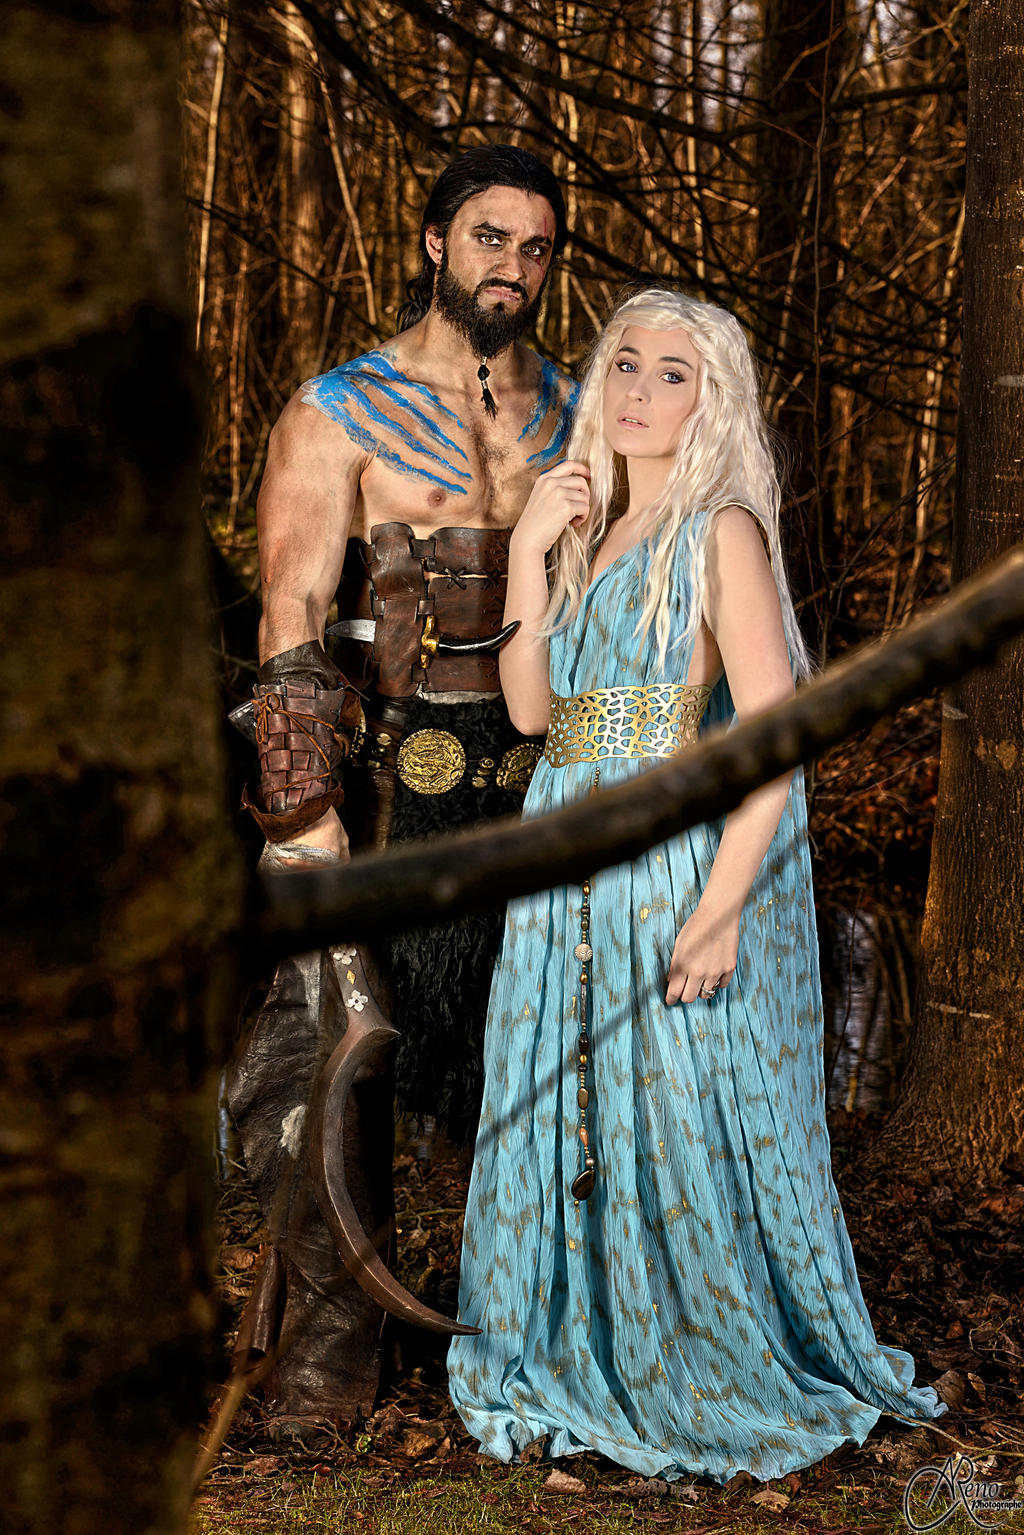 Khal and Khaleesi by NikitaCosplay on DeviantArt